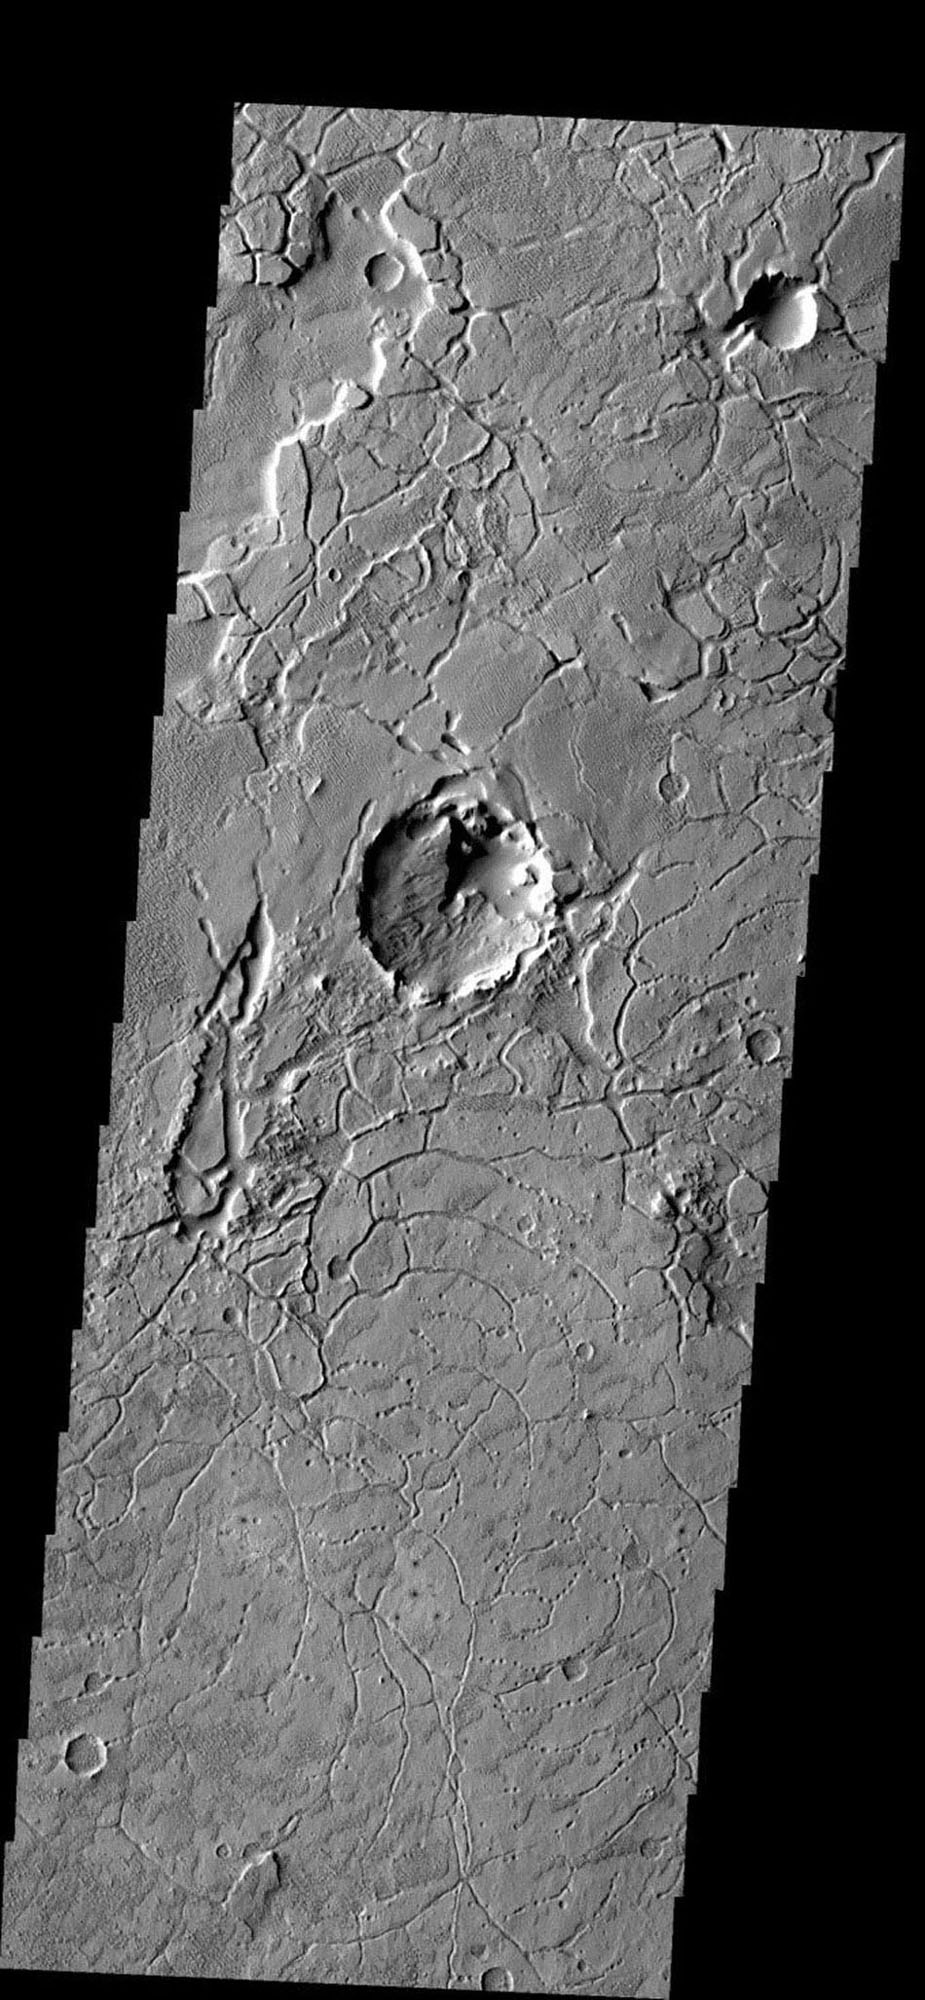 The arcuate fractures seen in this image are common along the highland/lowland boundary on Mars as seen by NASA's Mars Odyssey spacecraft.